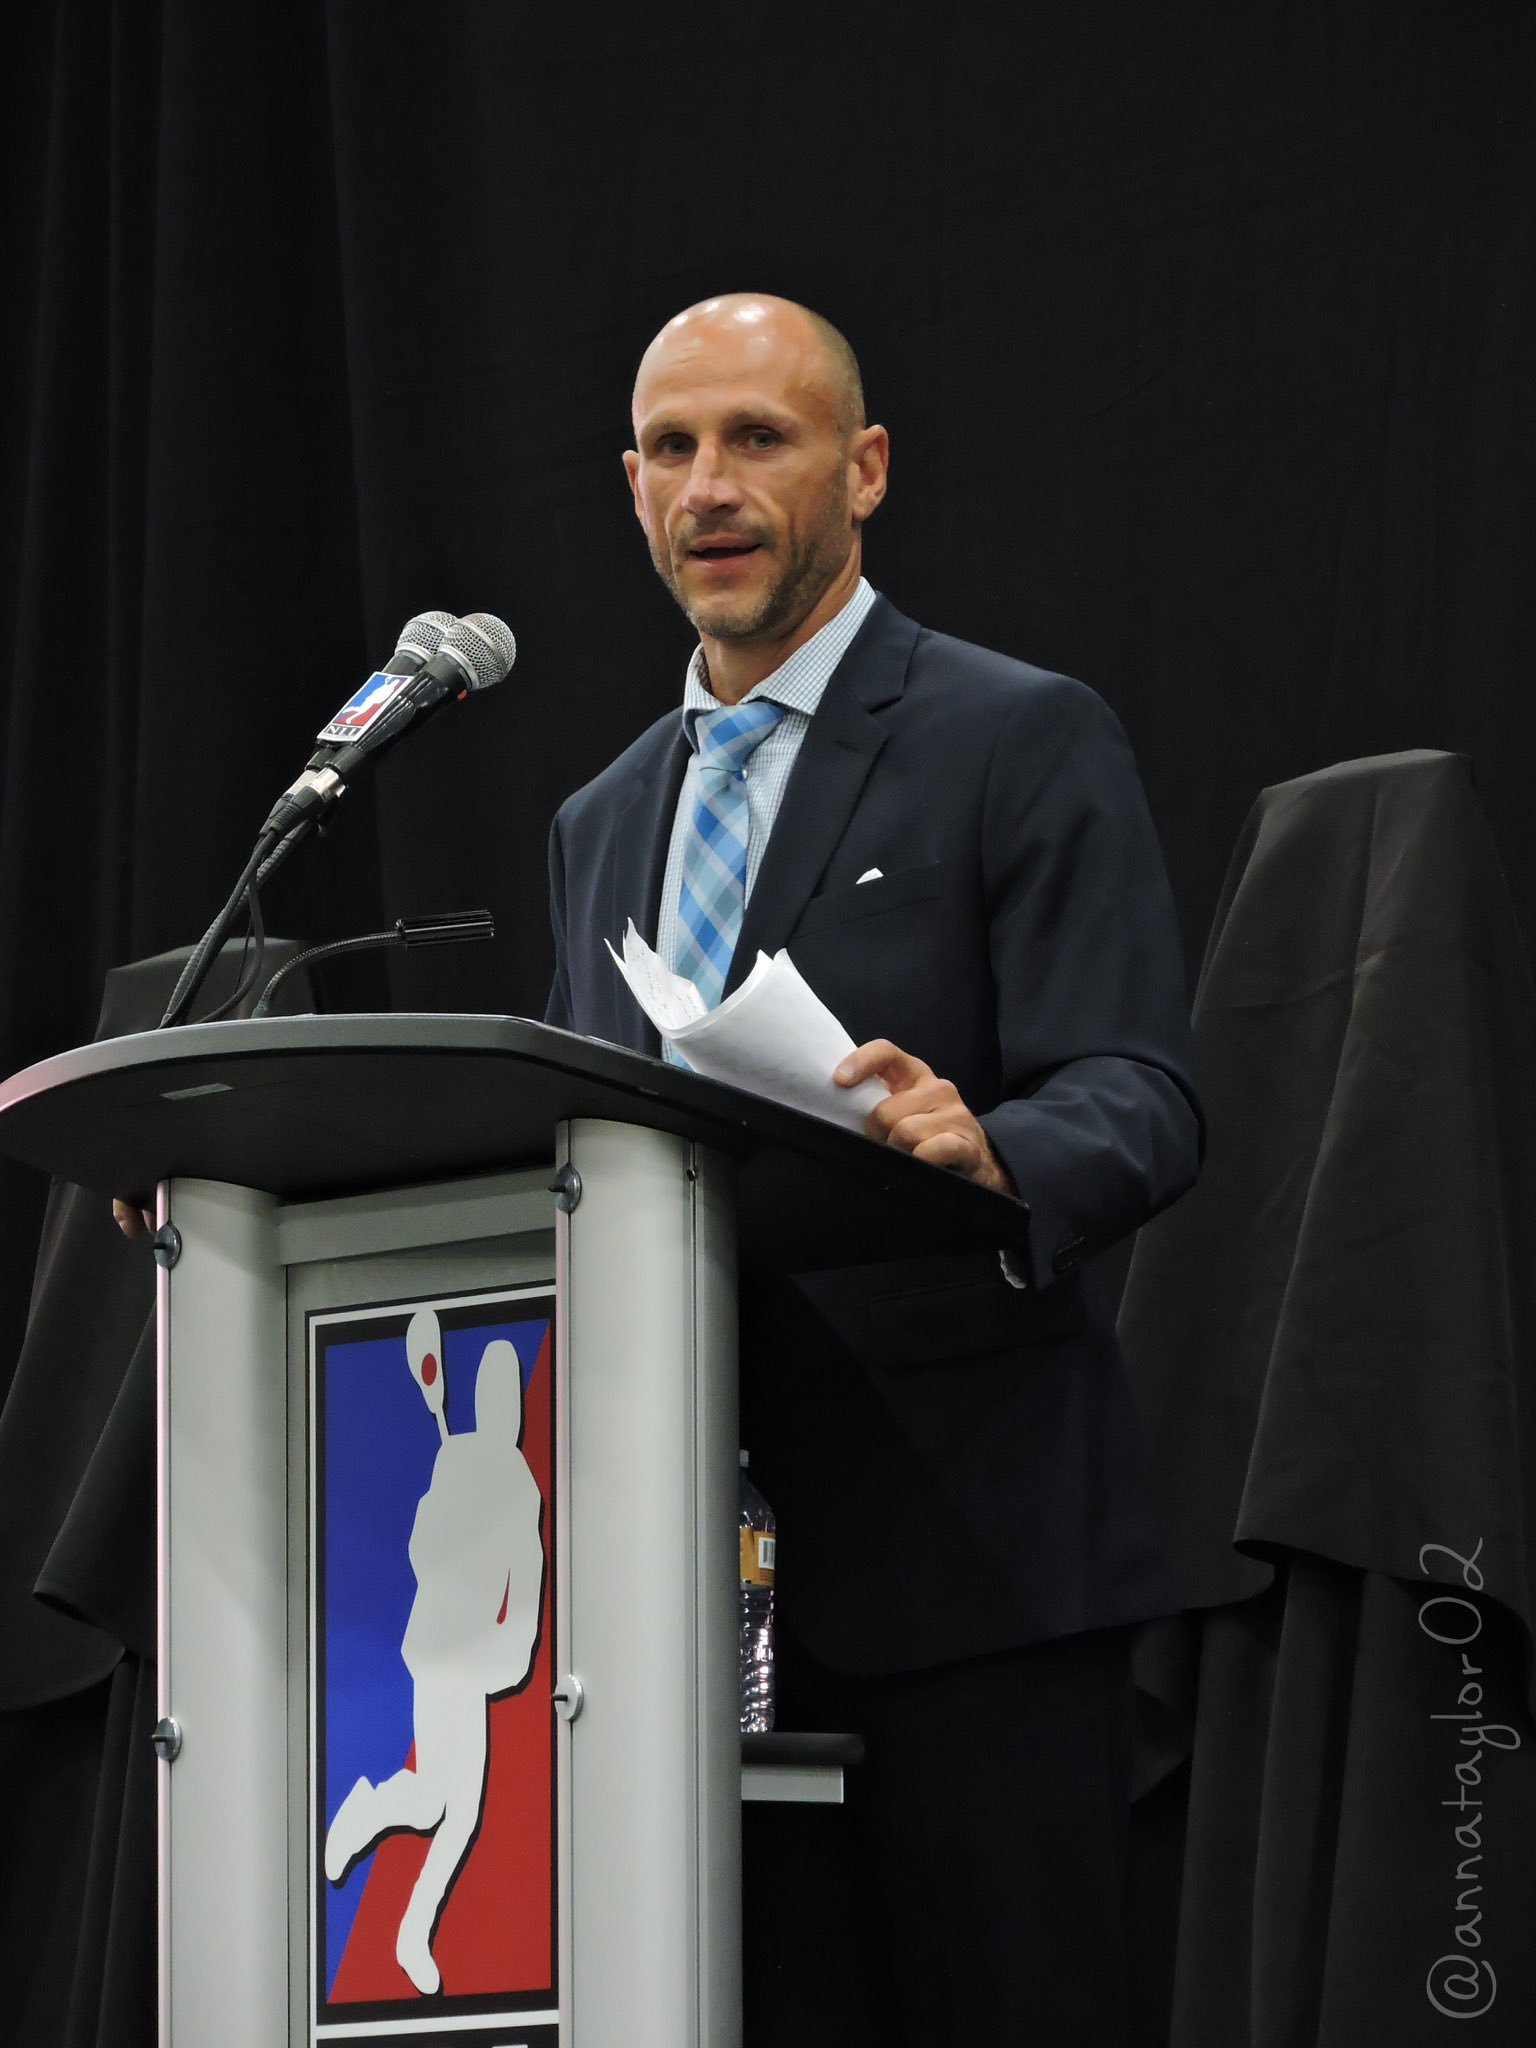 Tracey Kelusky speaks at his NLL Hall of Fame induction ceremony. (Photo credit: Anna Taylor)